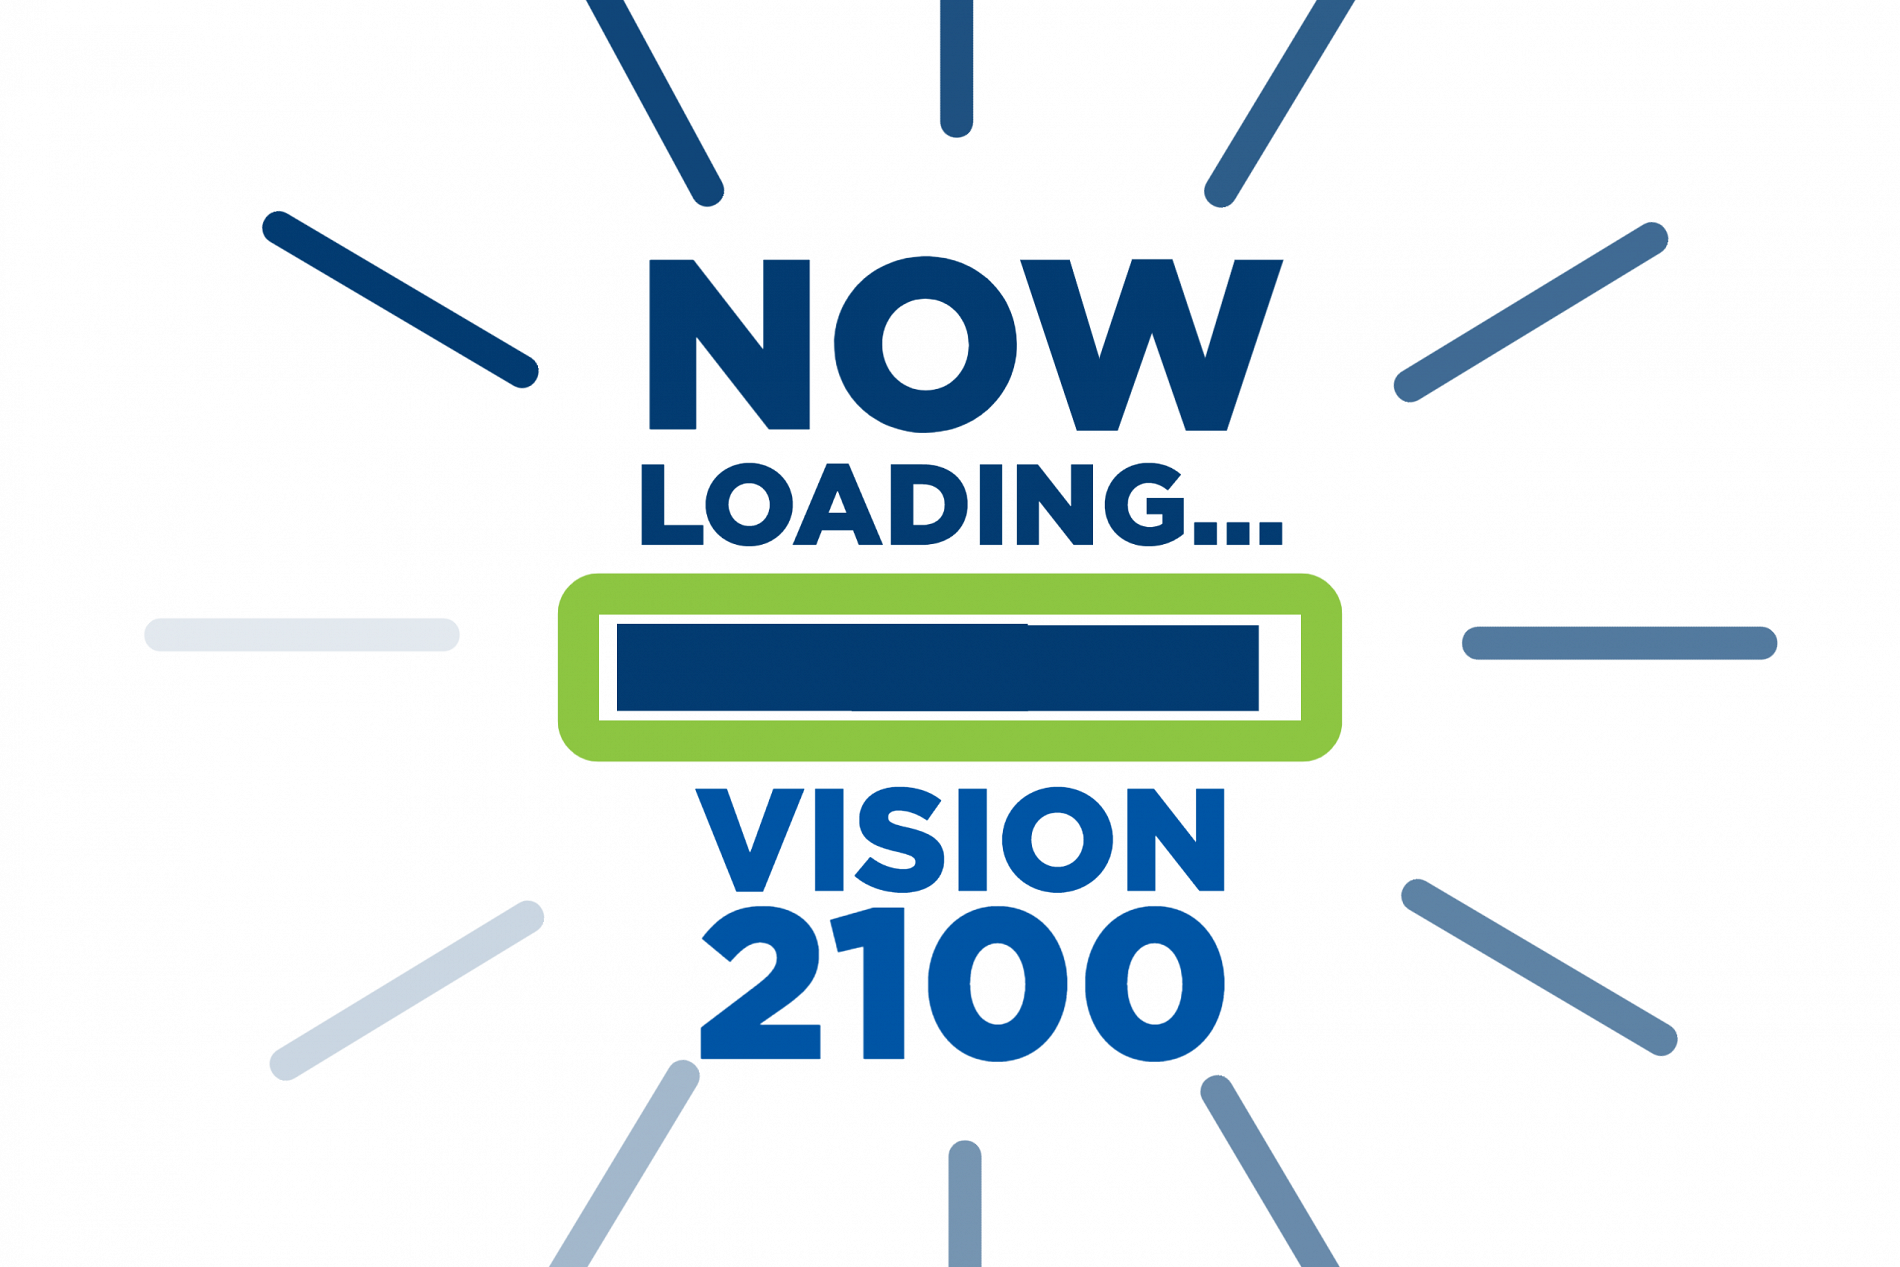 Now Loading Vision 2100 Landscape